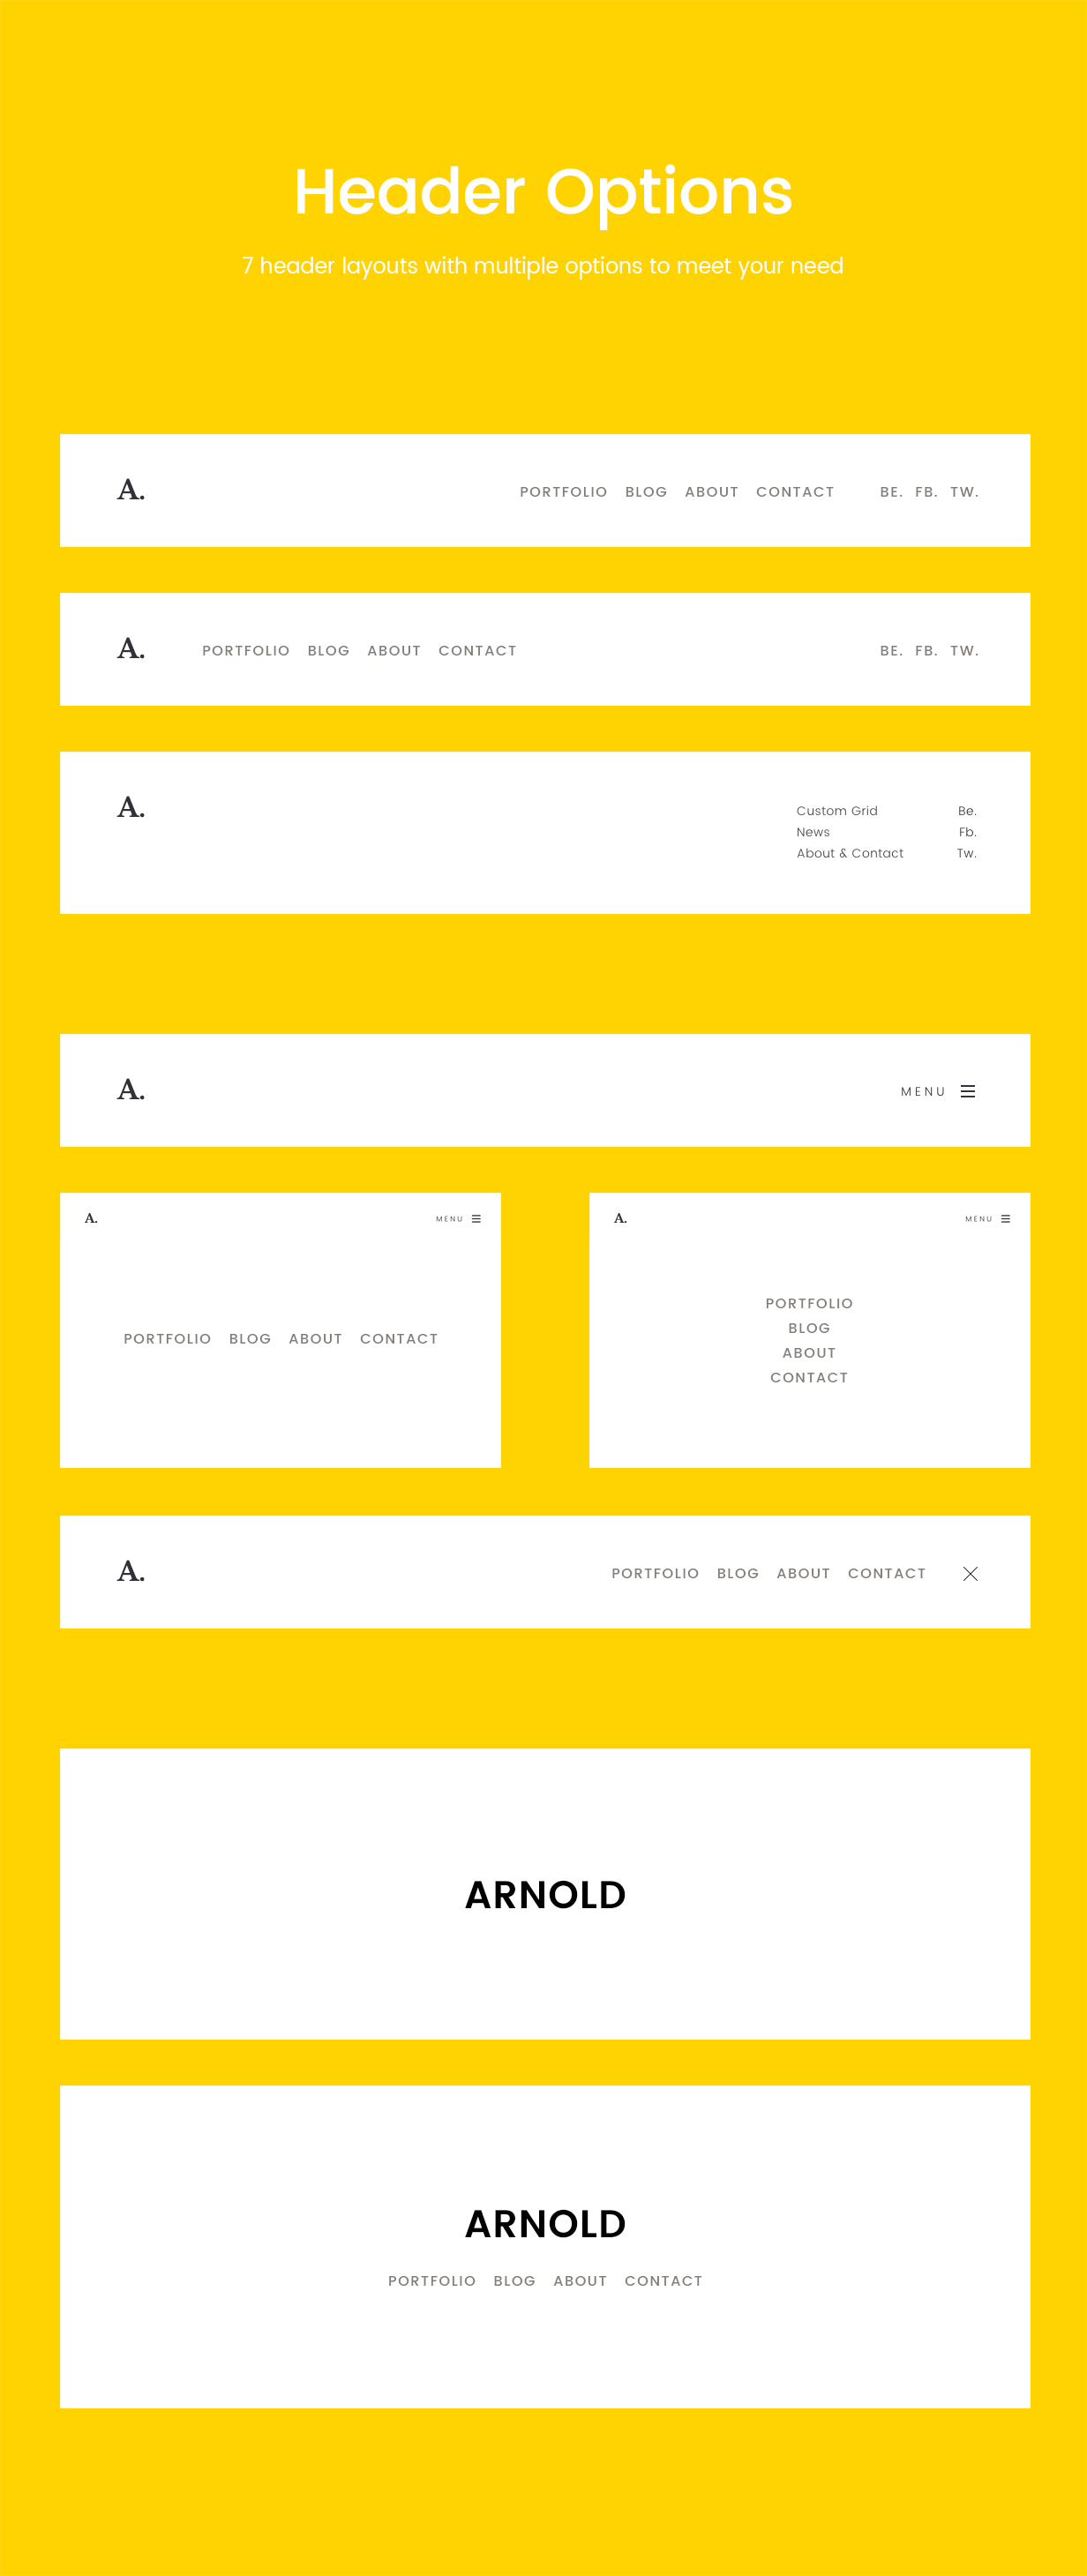 Arnold_WordPress_Theme_8_Header_layouts